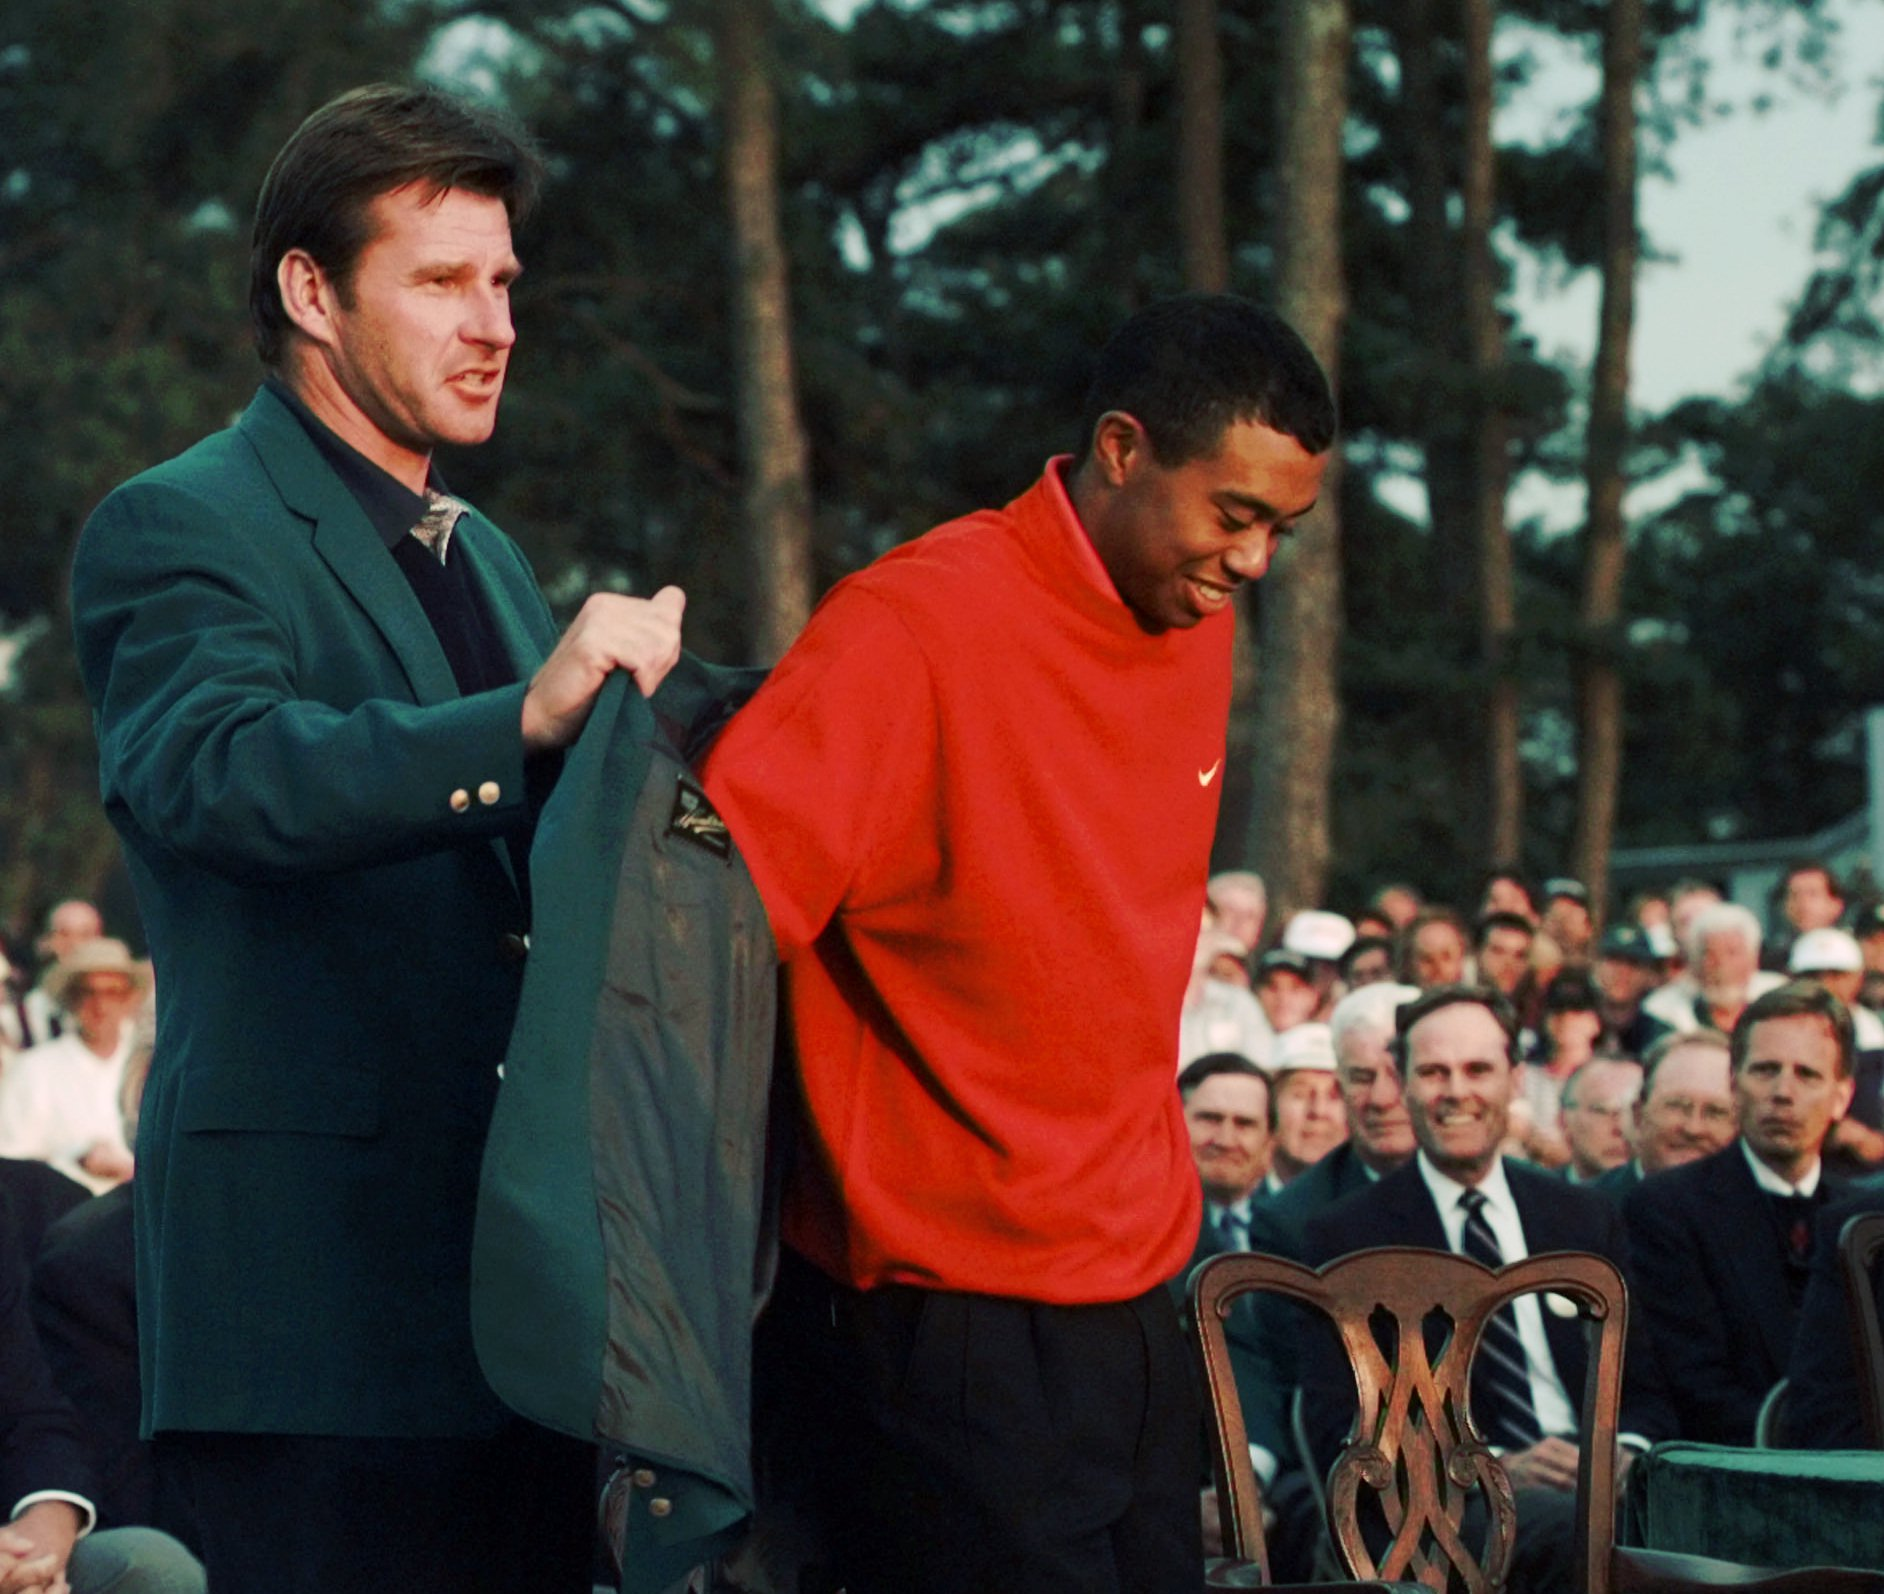 1997 Masters champion Tiger Woods receives his Green Jacket from last year's winner Nick Faldo, left, at the Augusta National Golf Club in Augusta, Ga., Sunday, April 13, 1997. (AP Photo/Amy Sancetta)